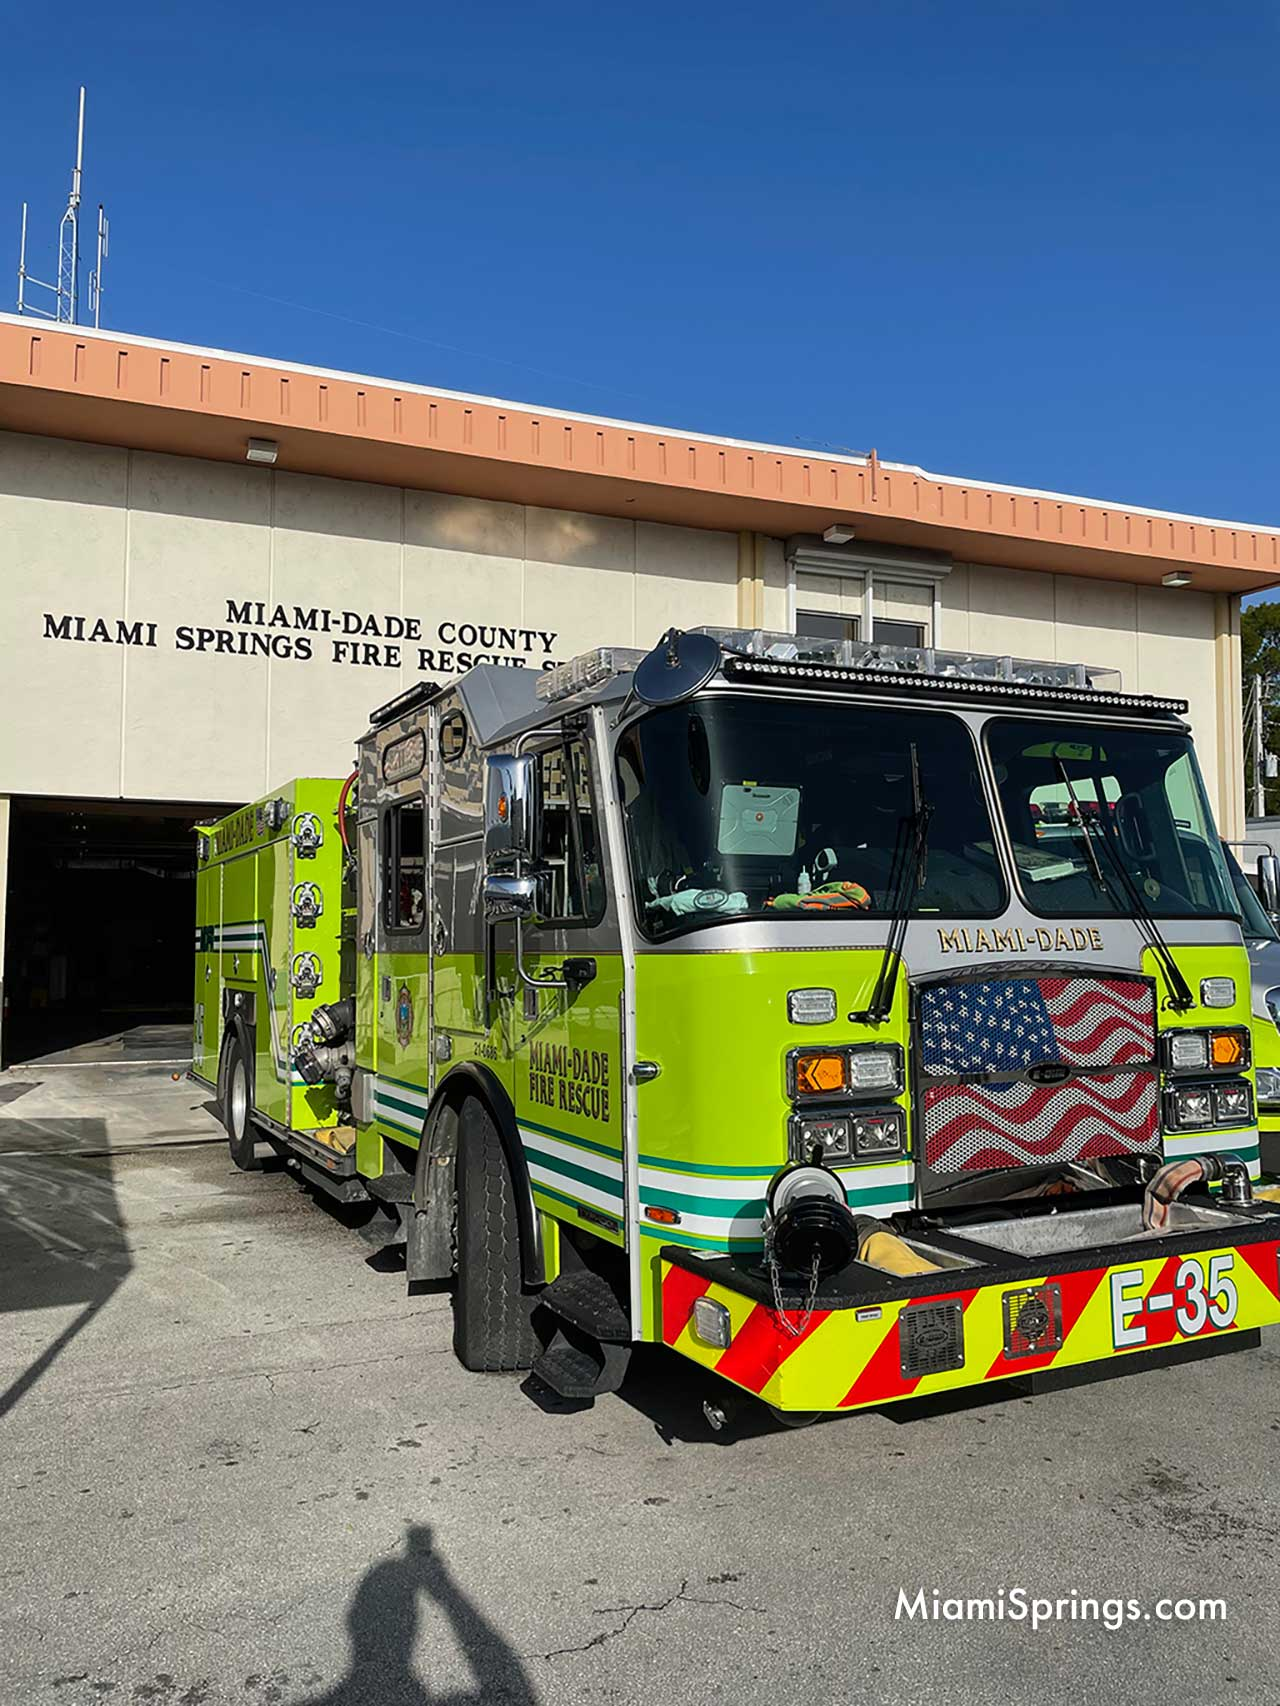 Fire Truck from Miami-Dade Fire Station #35